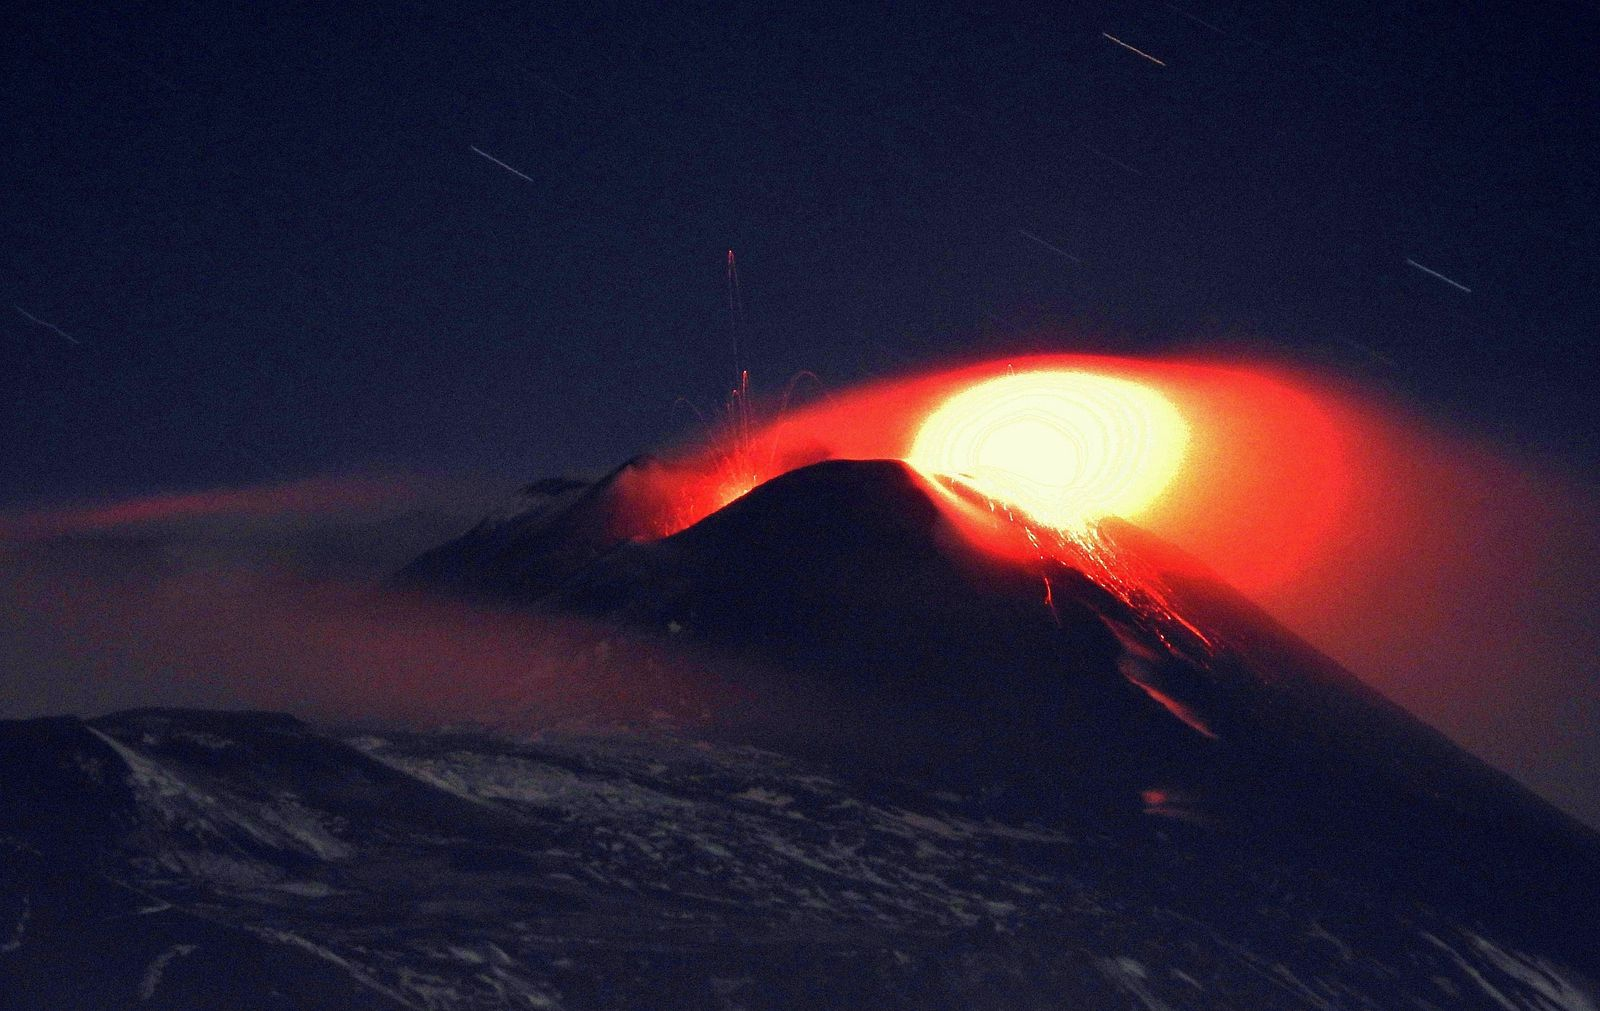 Etna SEC - activity of the southeast and of the Saddle vents on 01.30.2021 - photo Boris Behncke